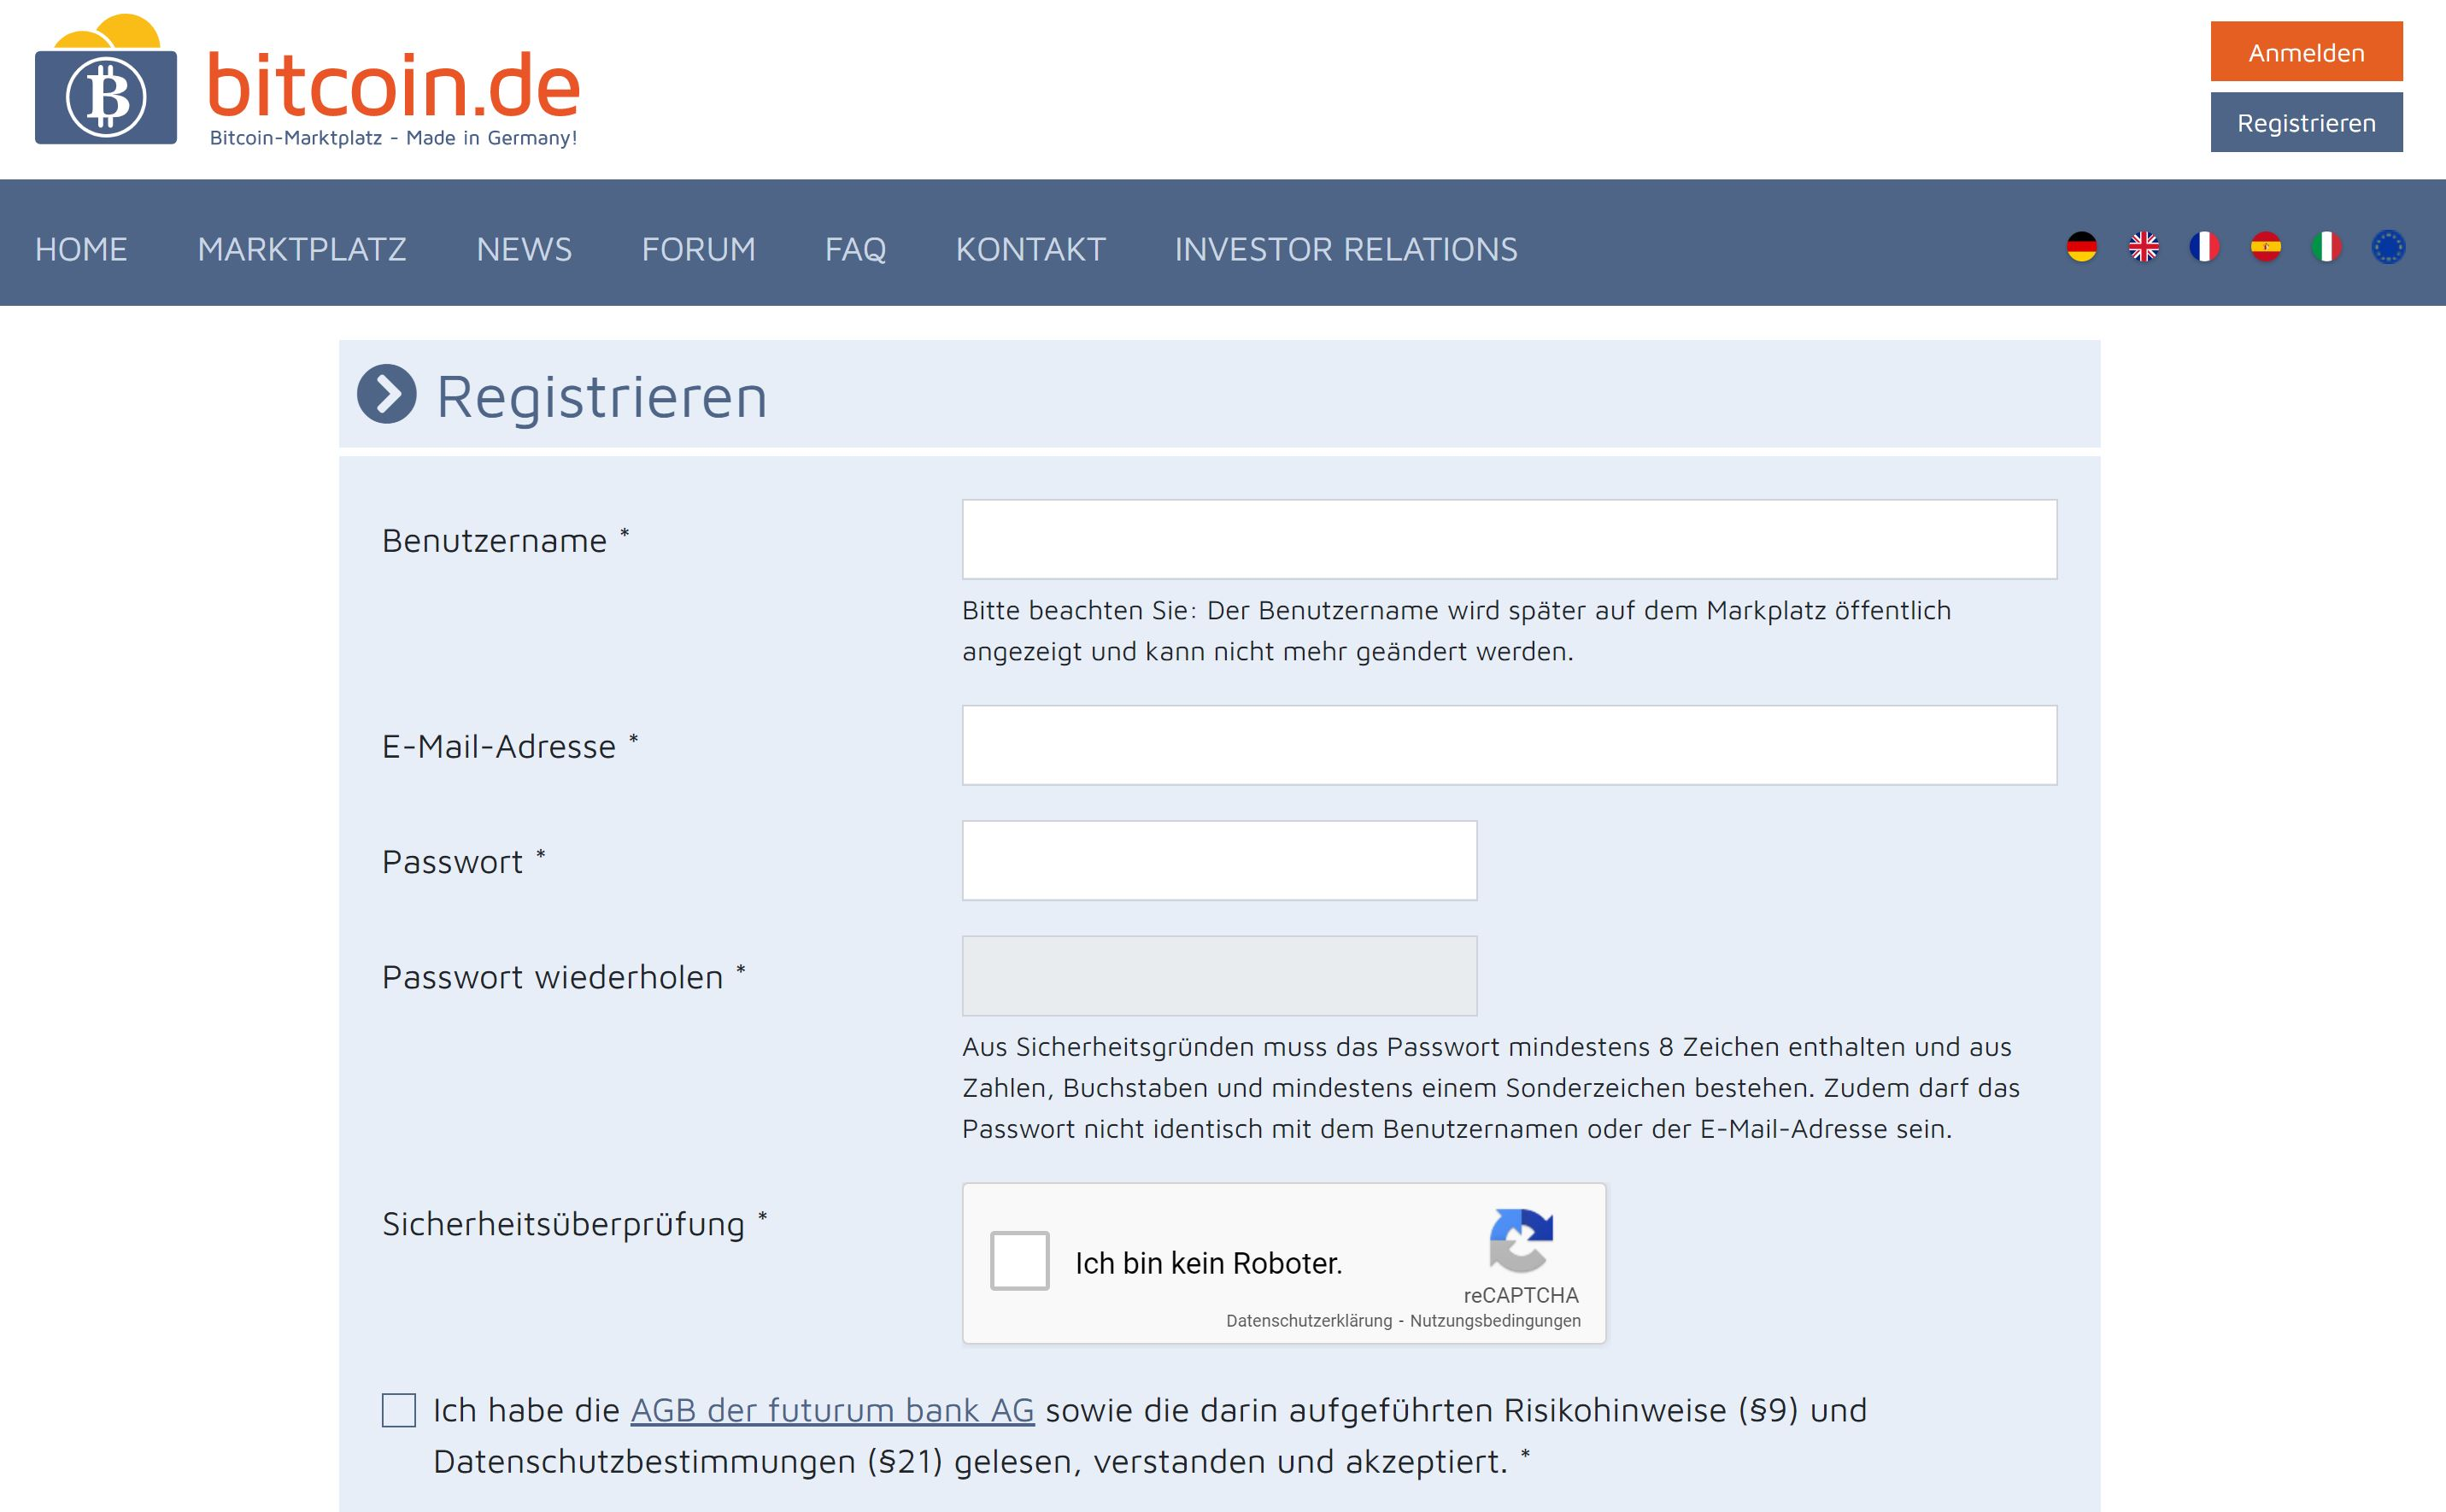 Bitcoin.de homepage account registration